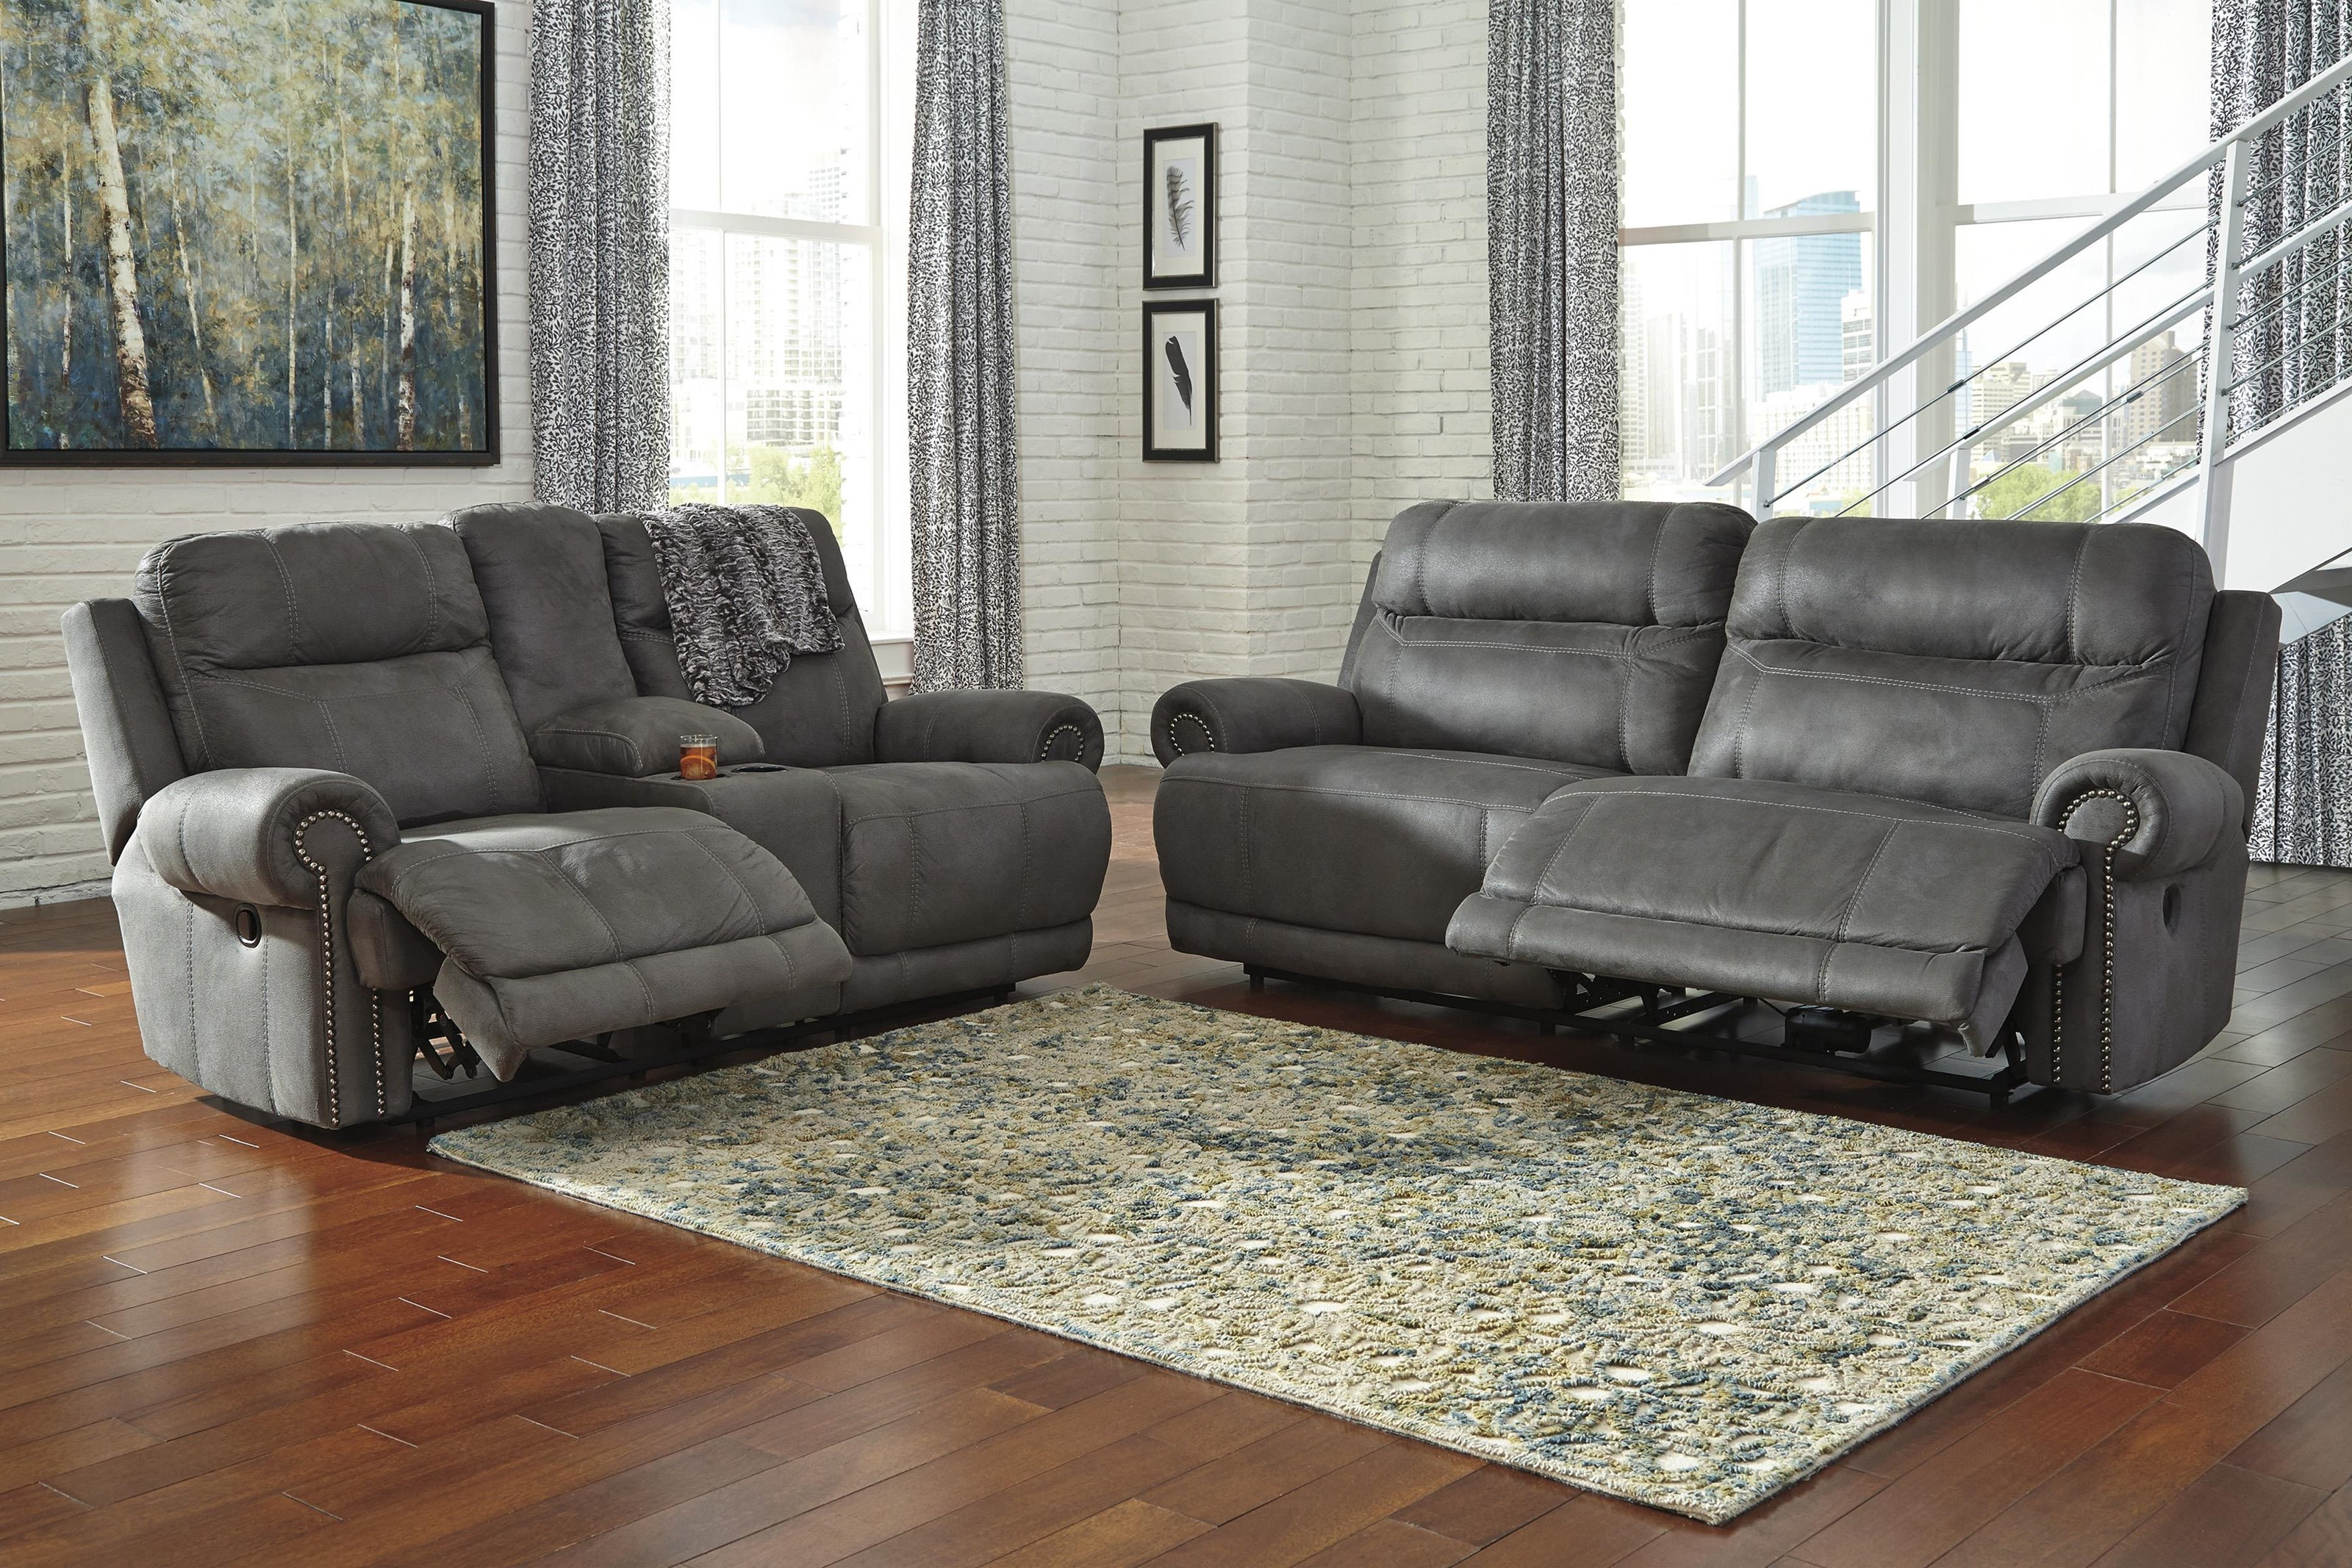 Picture of: Signature Design By Ashley Austere Gray 3840147 96 82 Power Recliner Sofa Loveseat And Recliner Set Sam Levitz Furniture Reclining Living Room Groups